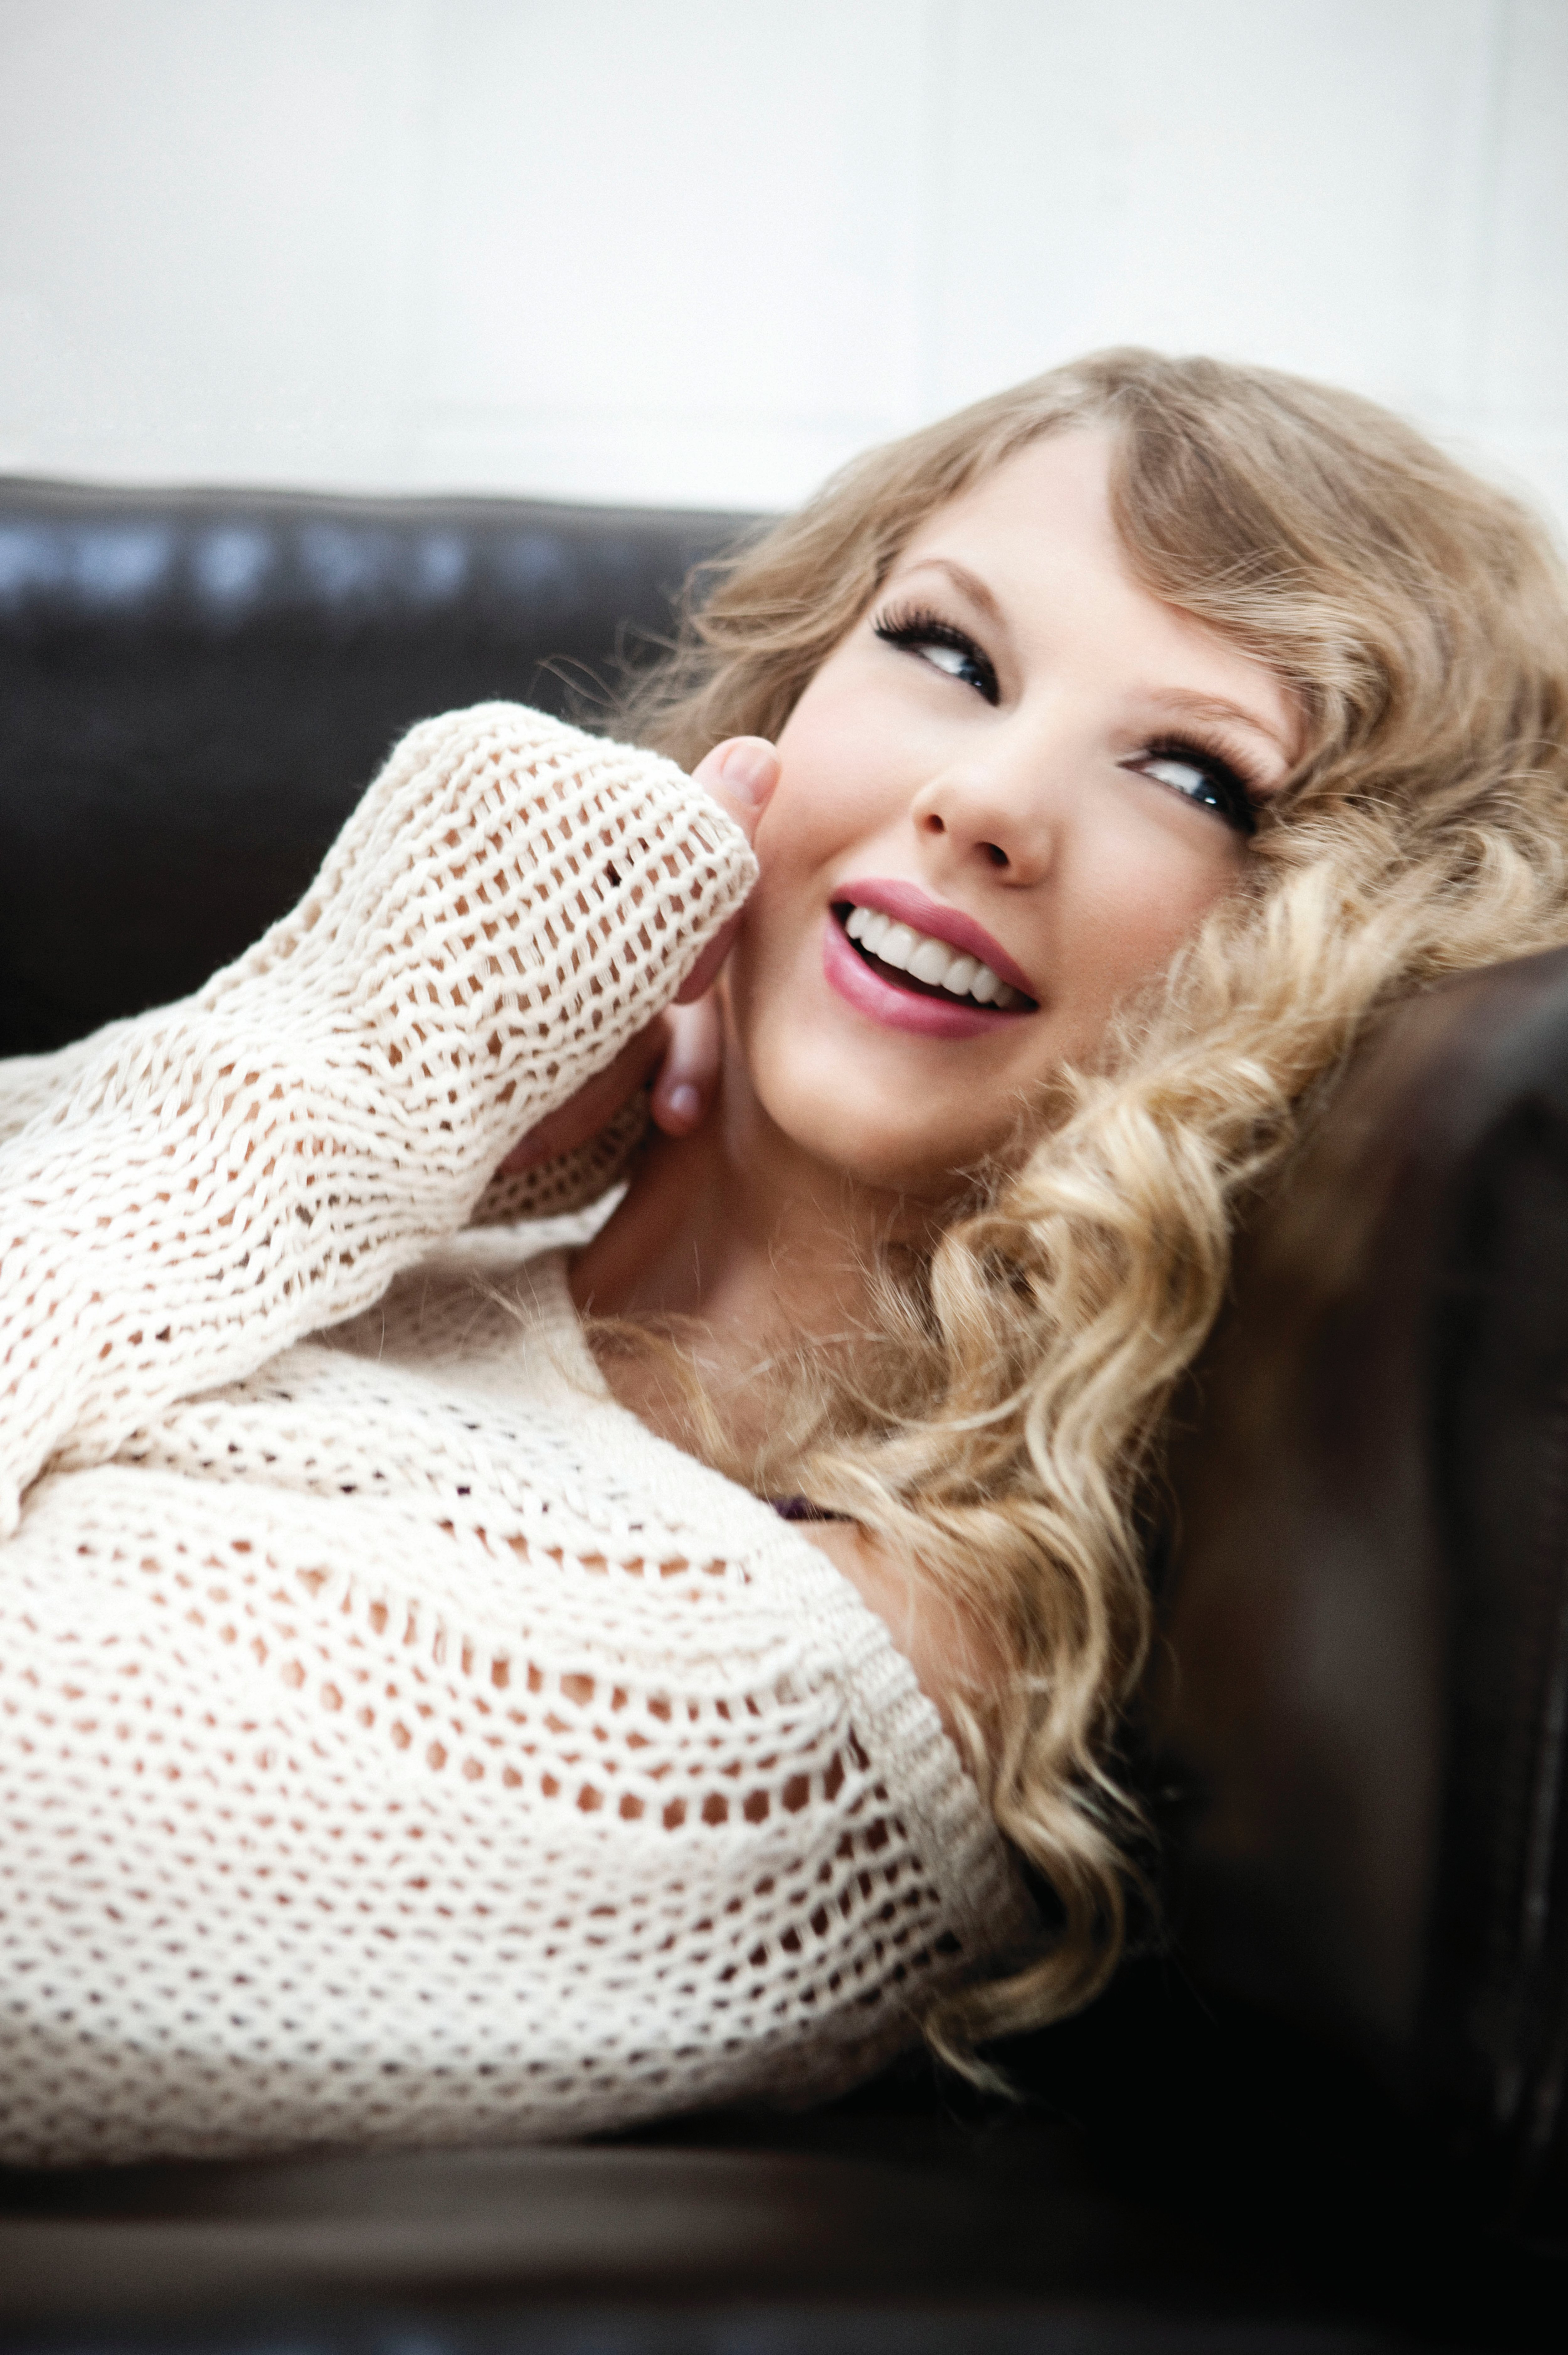 I M So Glad You Made Time To See Me Taylor Swift On Bliss